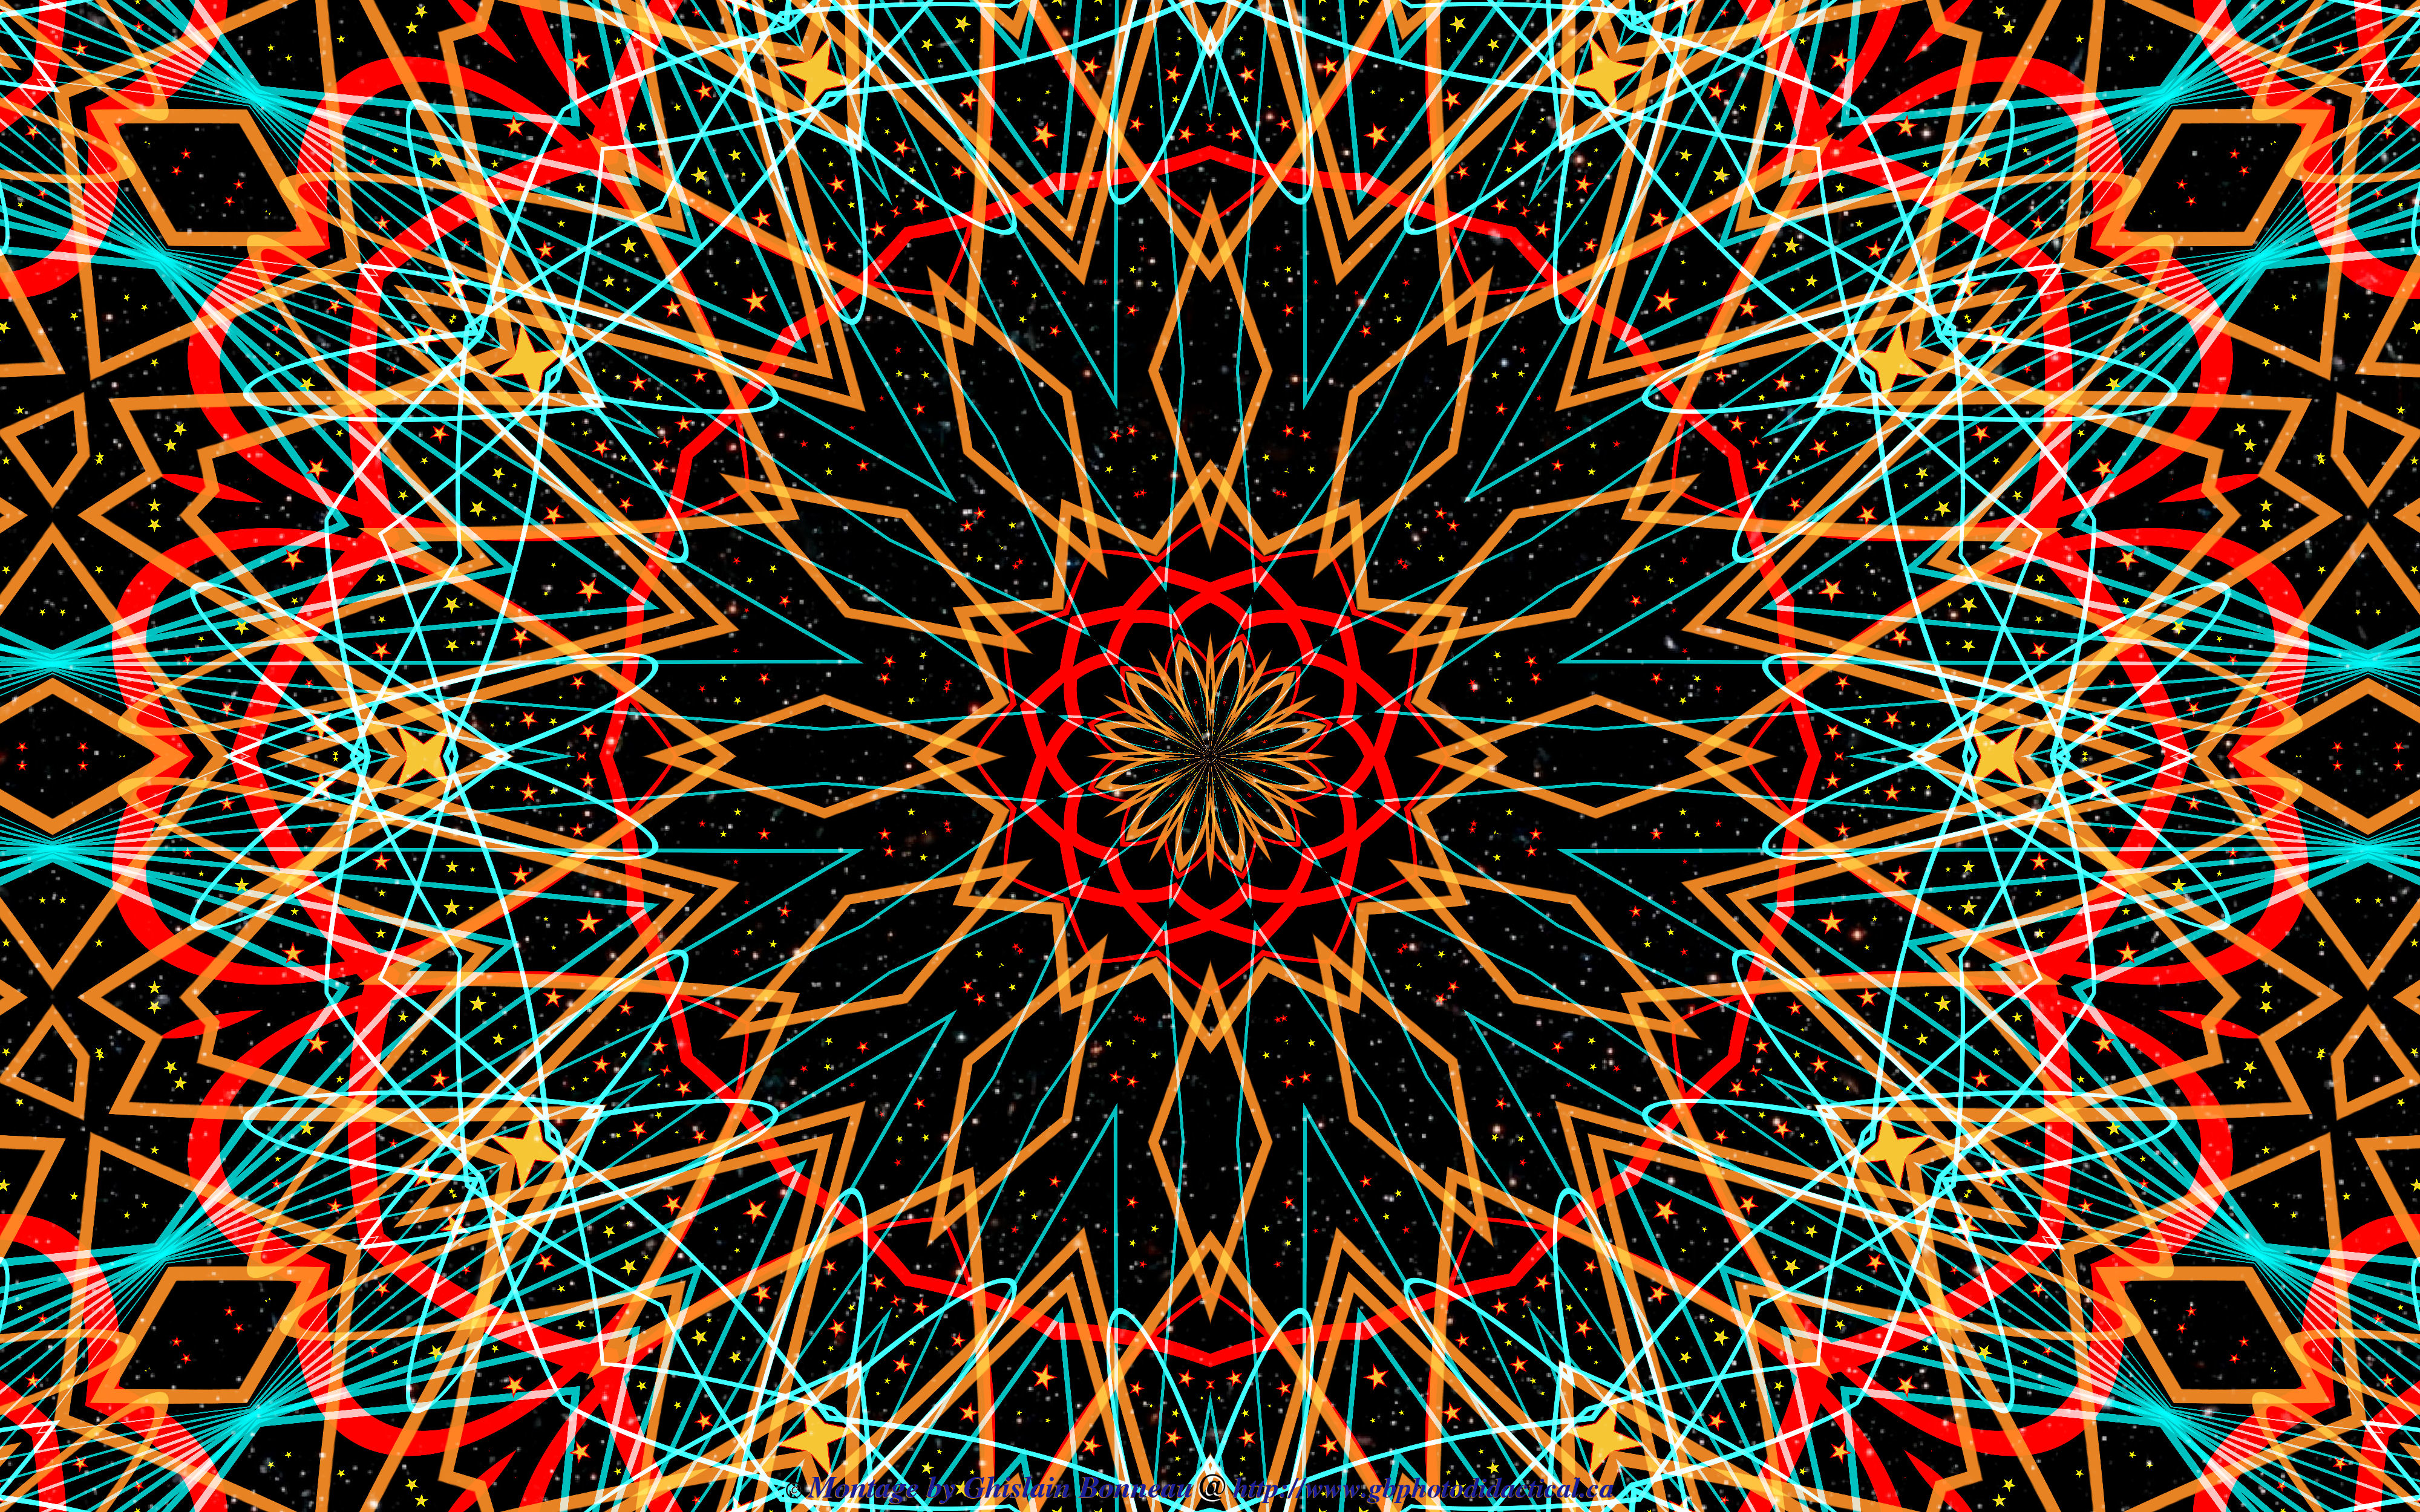 Free Download Free Wallpaper Psychedelic Kaleidoscope 29